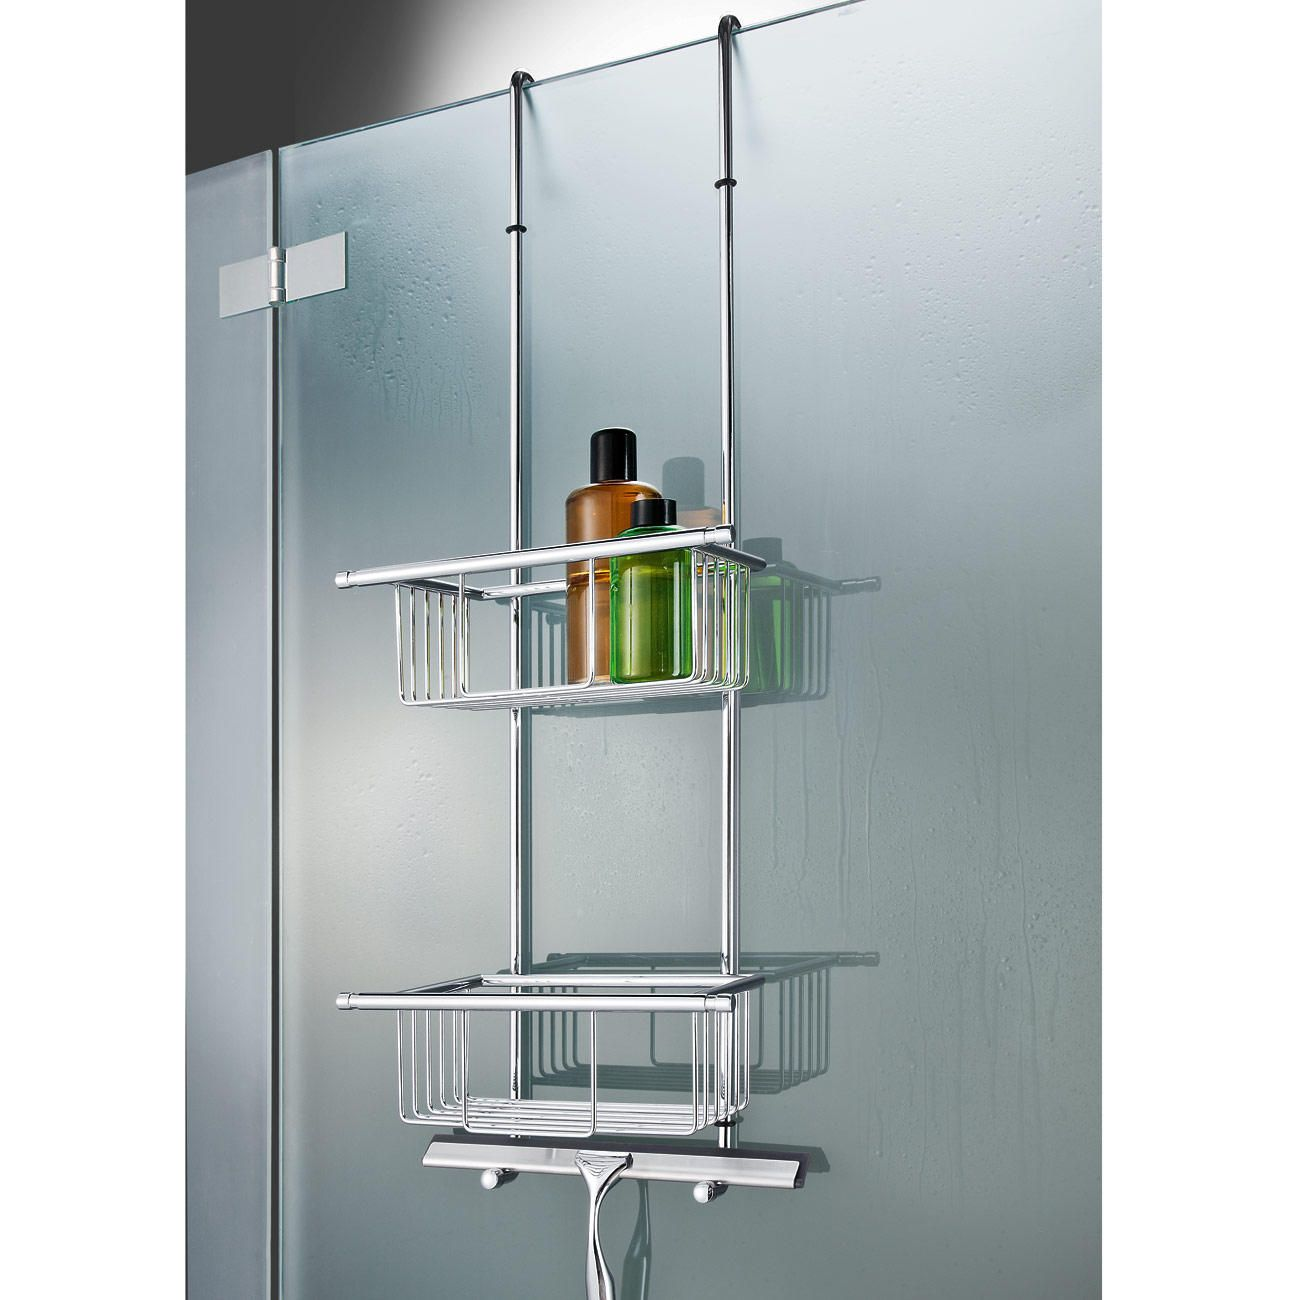 Awesome Hanging Shower Tidy Mold - Bathtub Ideas - dilata.info